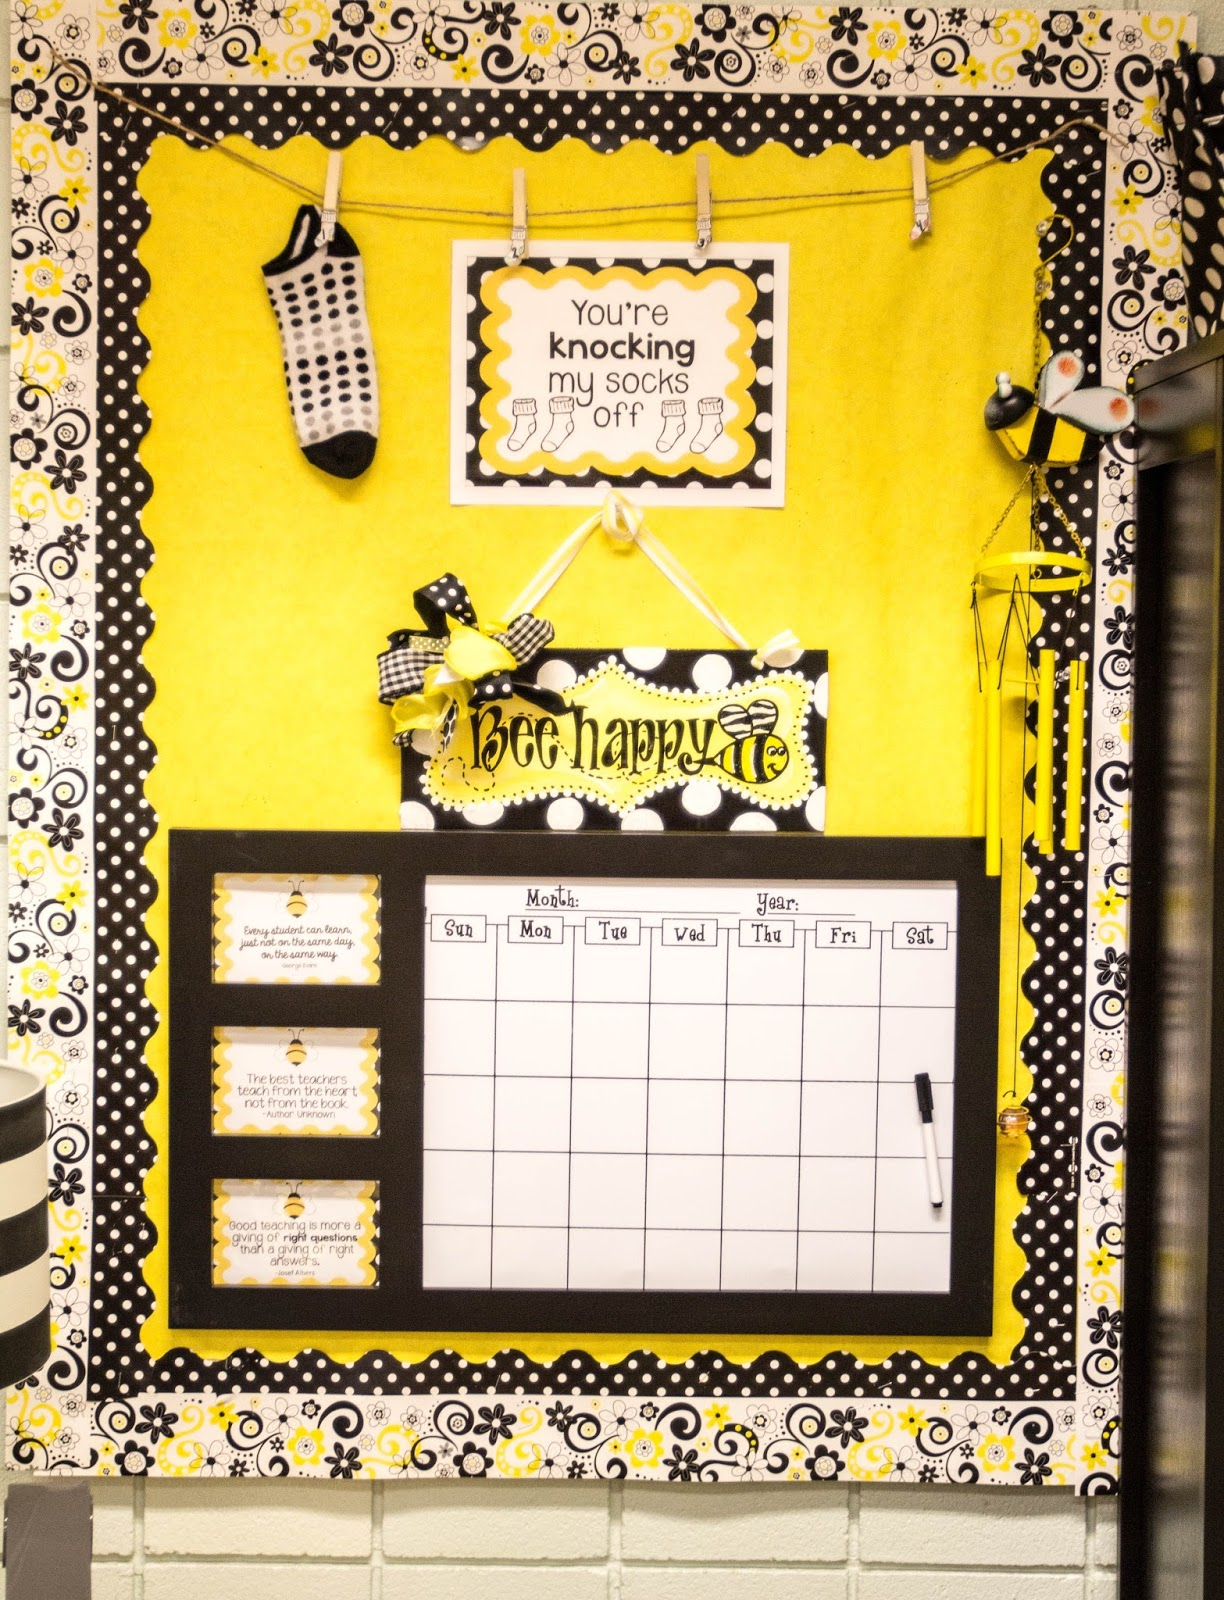 Classroom Management Decor ~ Run miss nelson s got the camera monday made it braggin